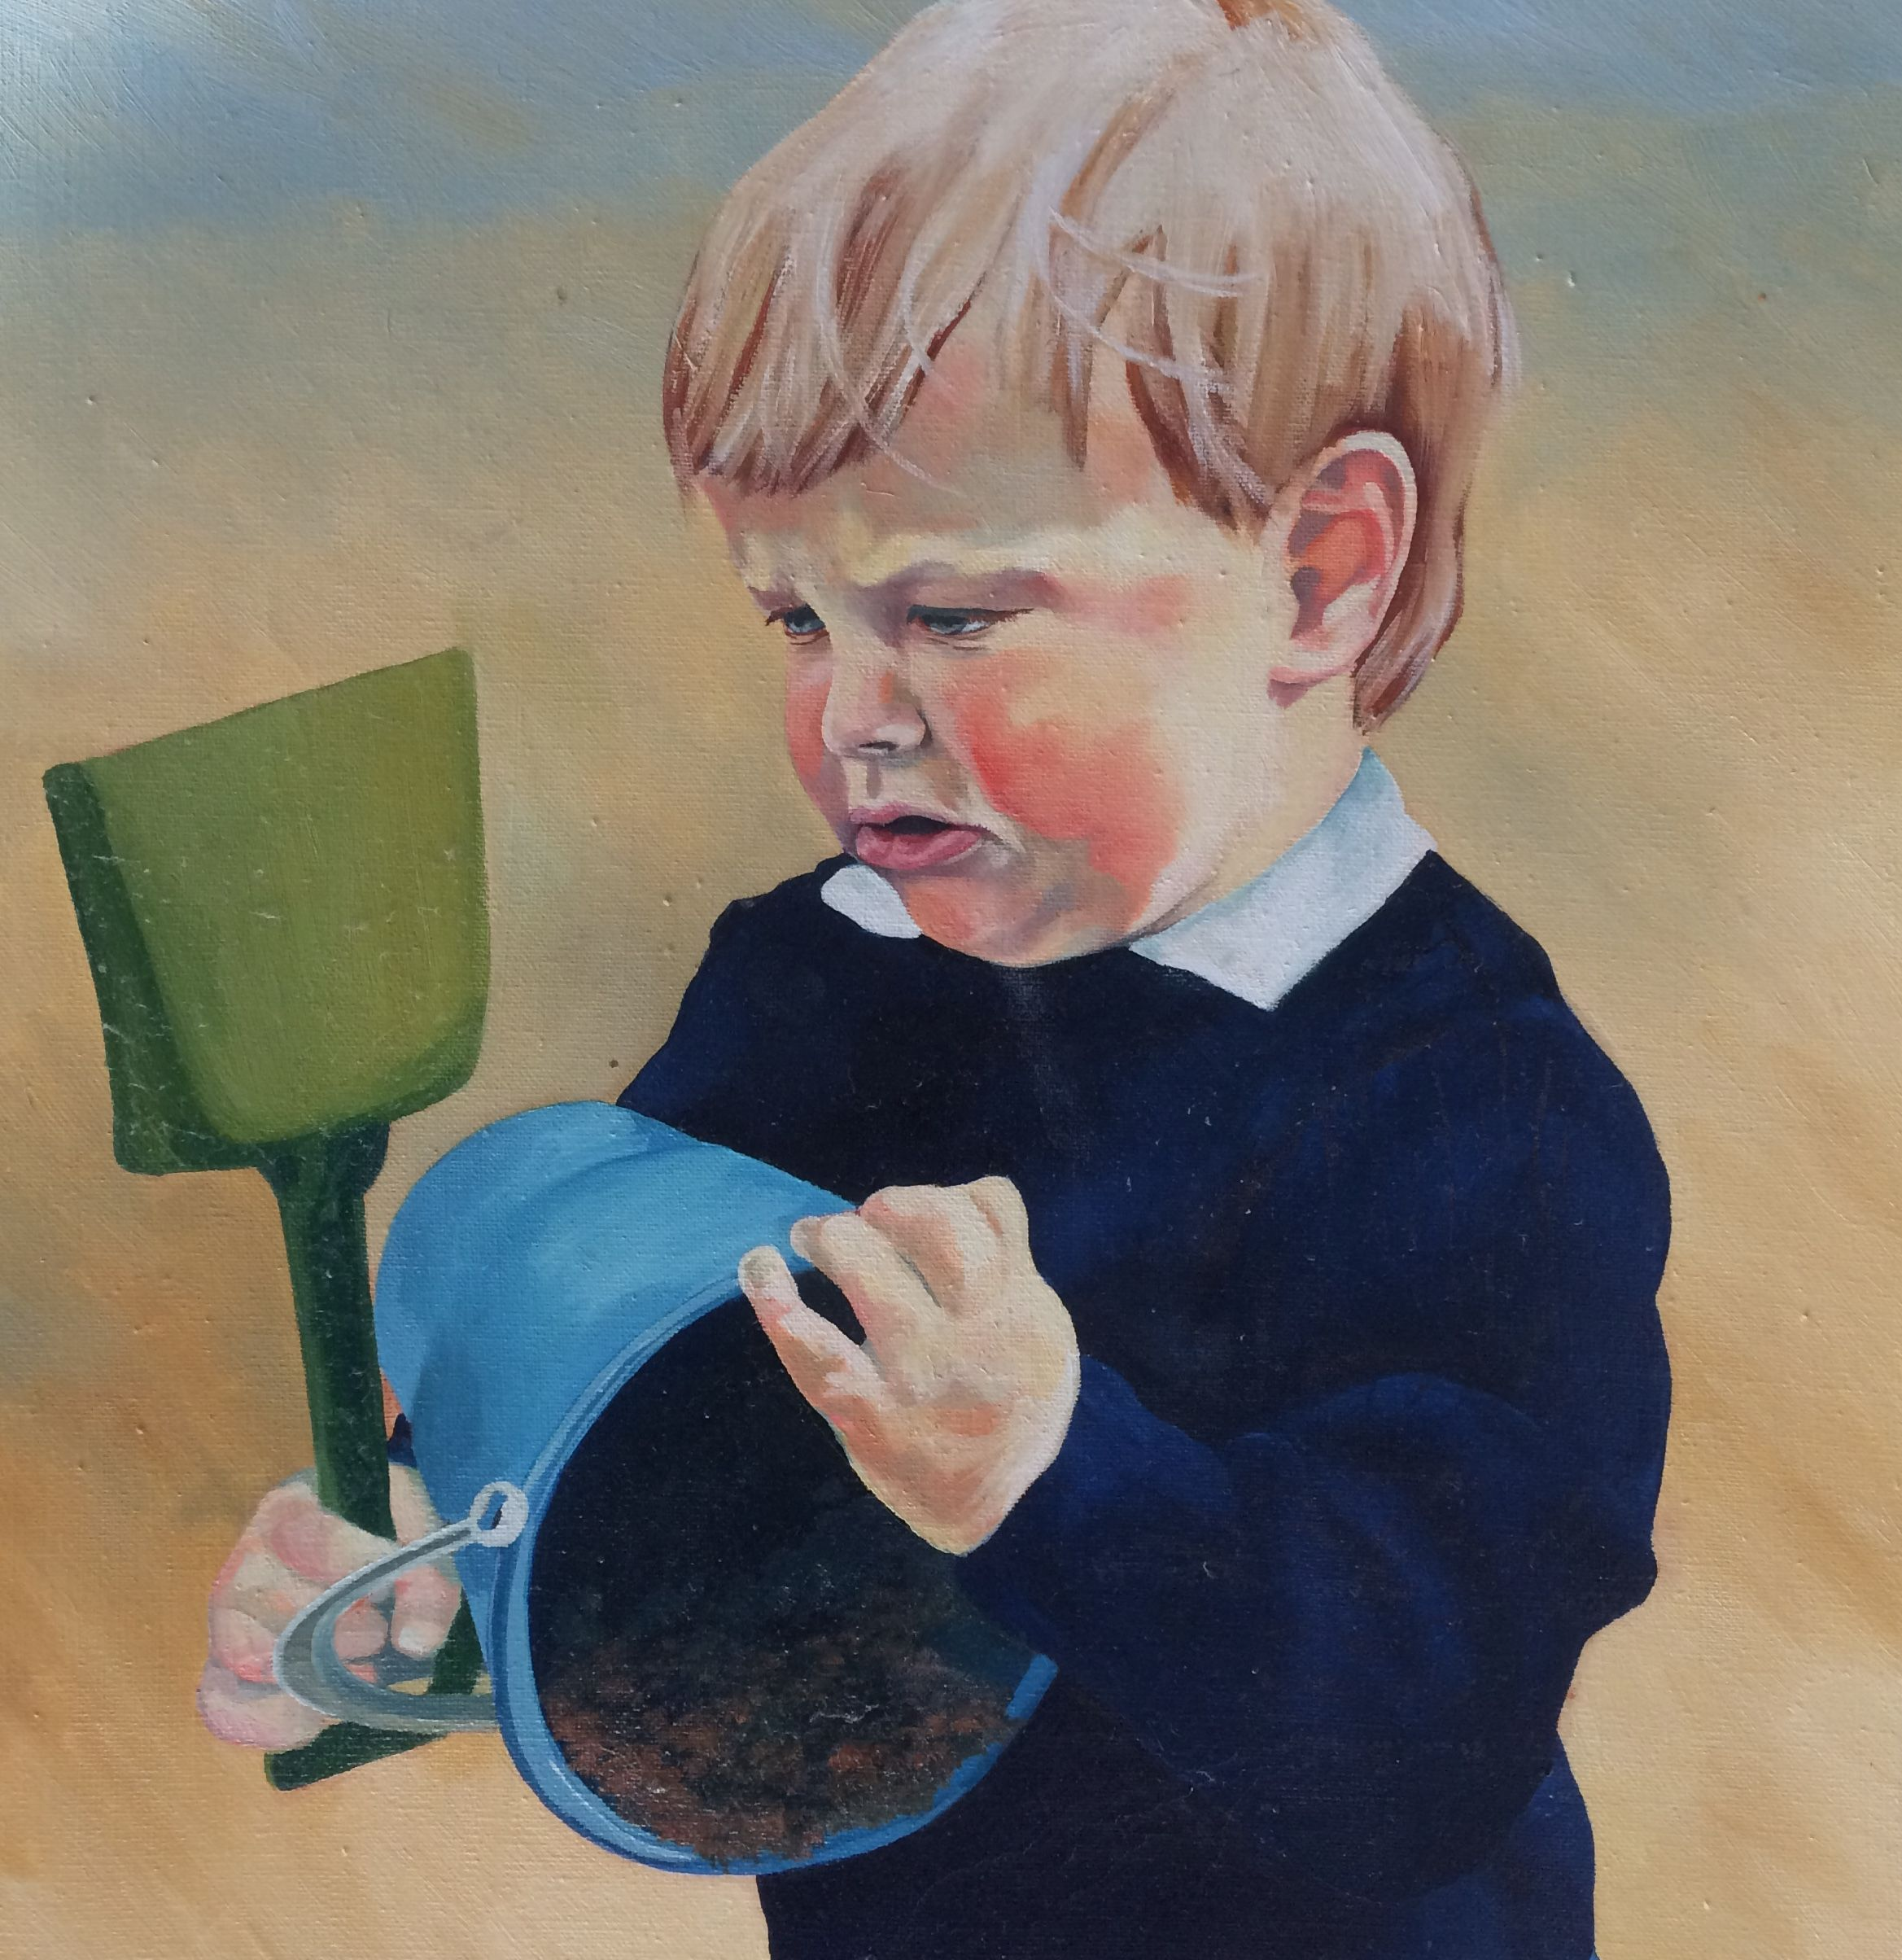 Custom portraits - to bespoke dimensions and specifications - in oil paint. Portraits of your family for birthdays, anniversaries etc. Original artwork.